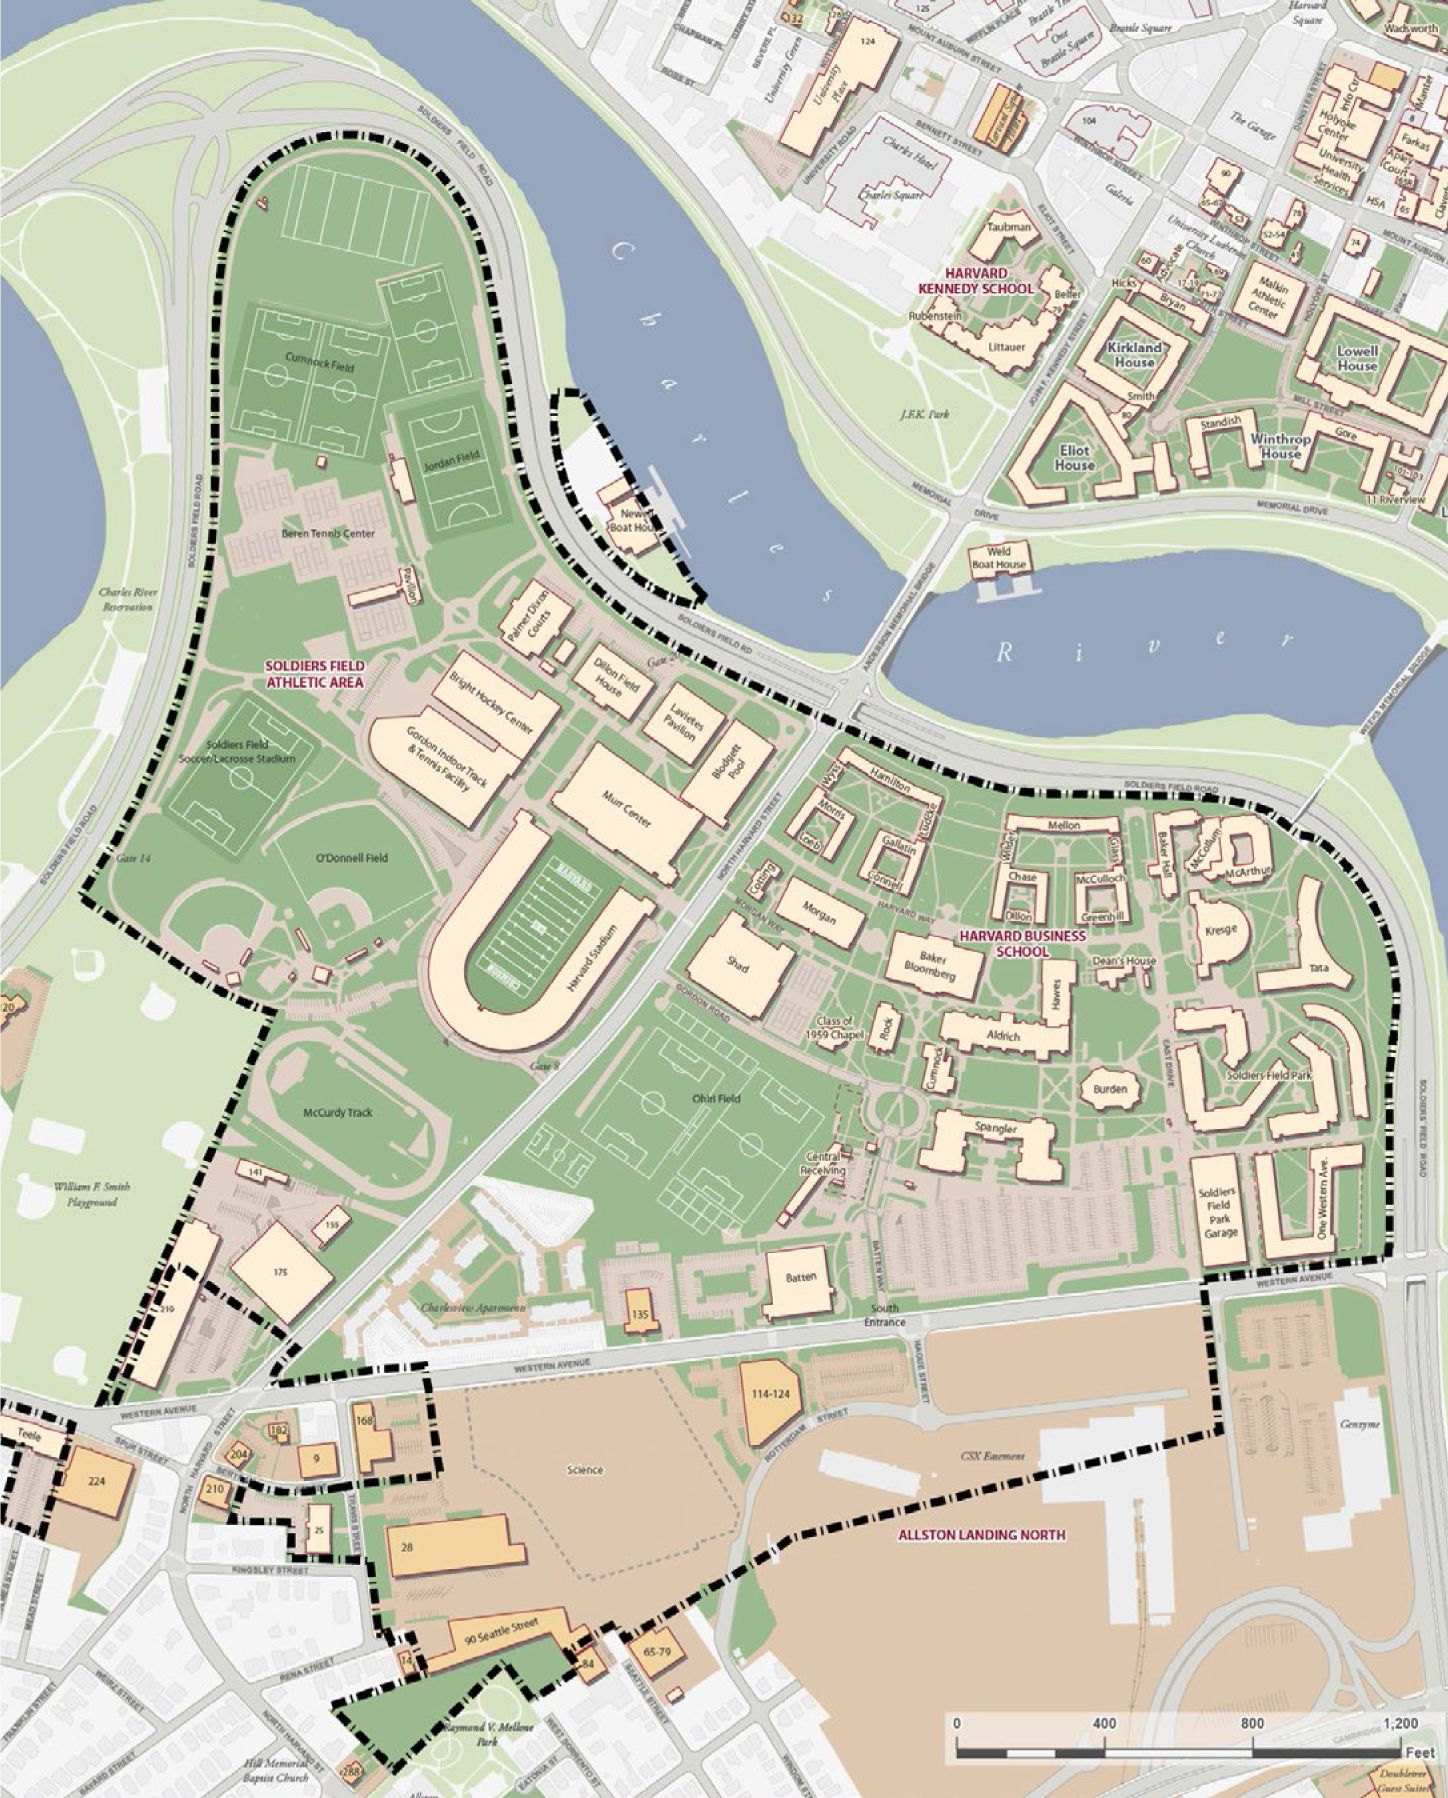 Under Armour Campus Map.Harvard Files Institutional Master Plan In Allston Harvard